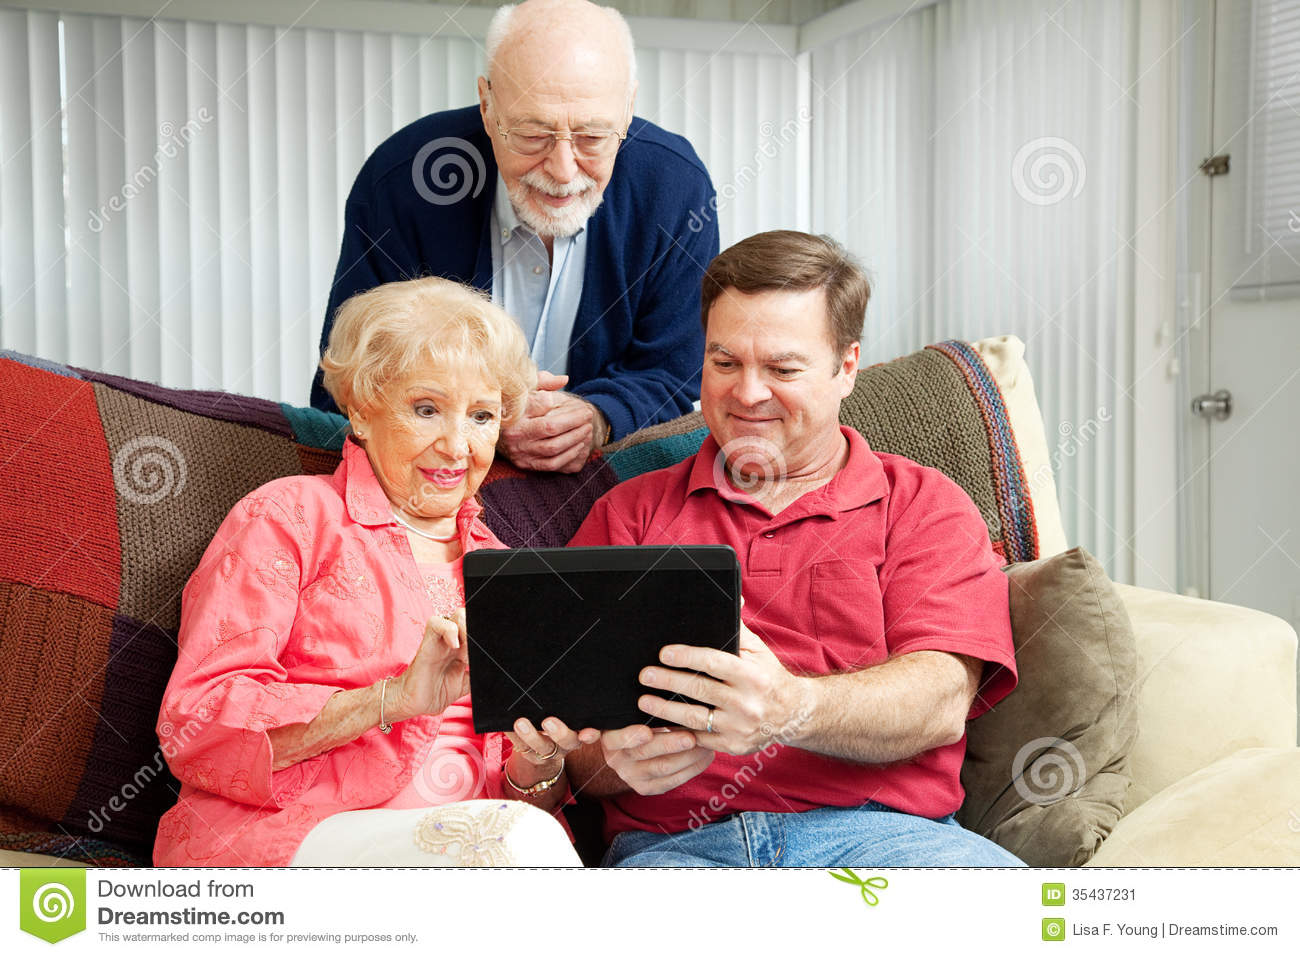 Teaching Seniors to Use Tablet PC